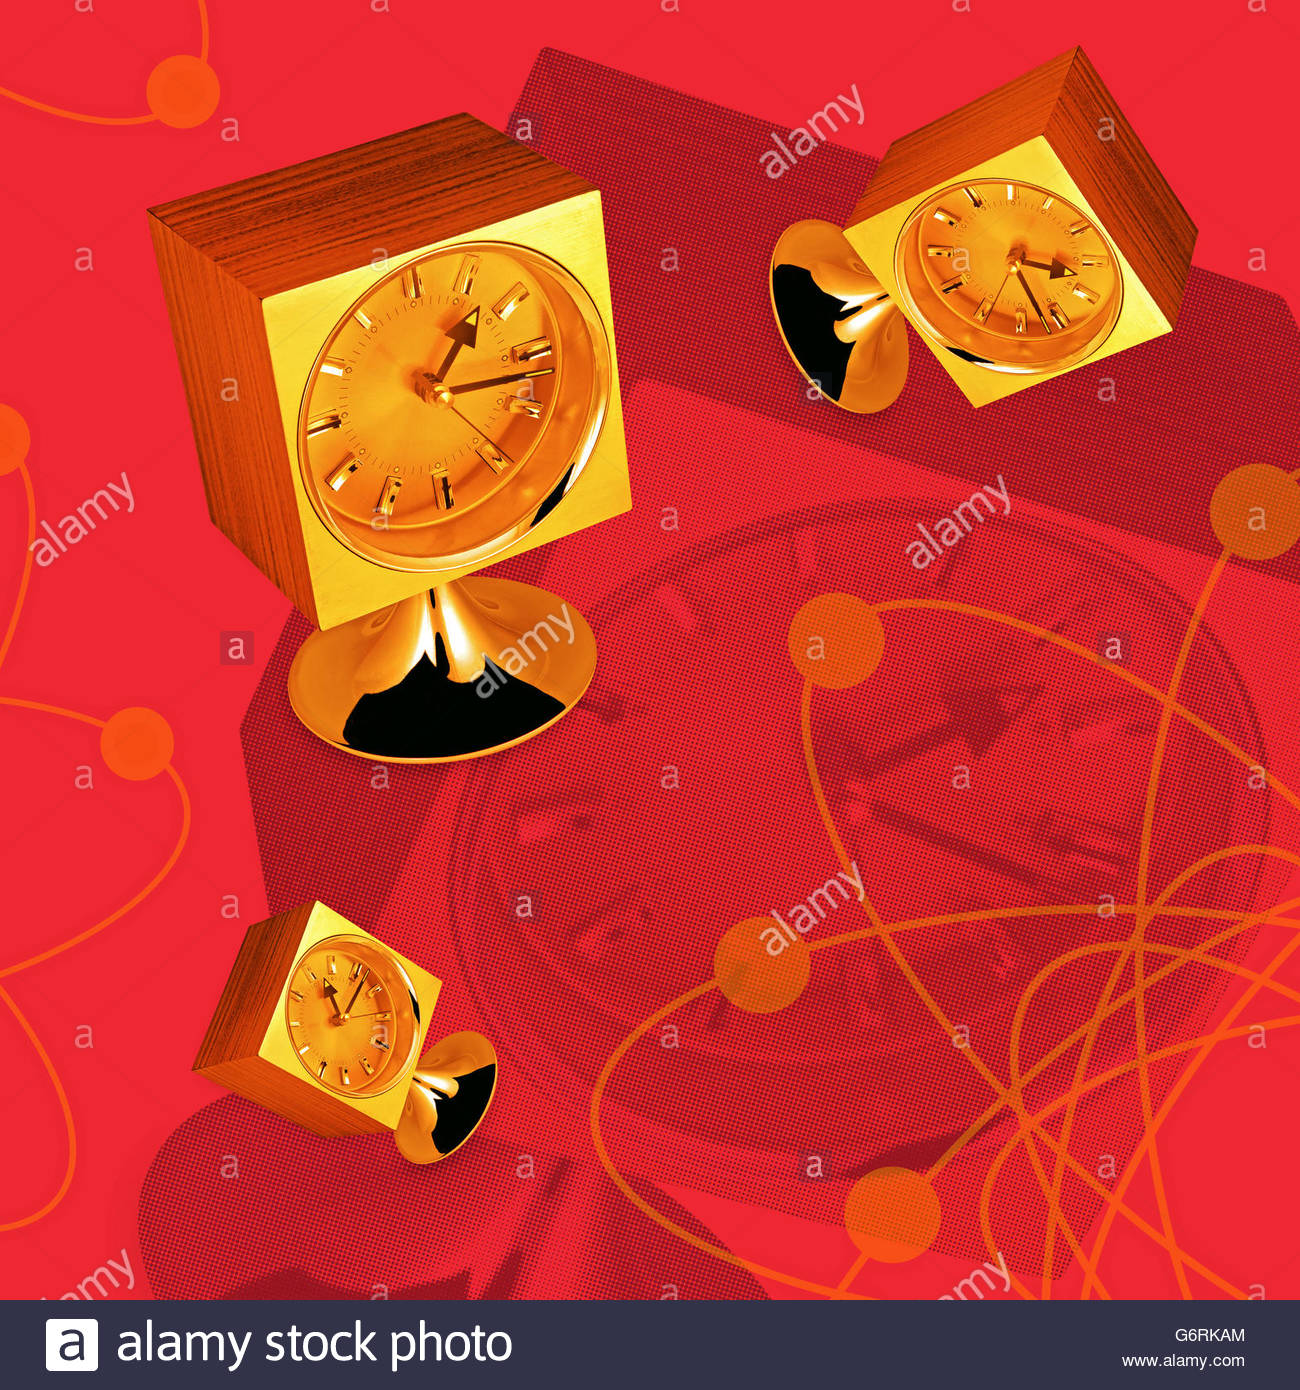 Vintage atomic mantel clock illustration - Stock Image